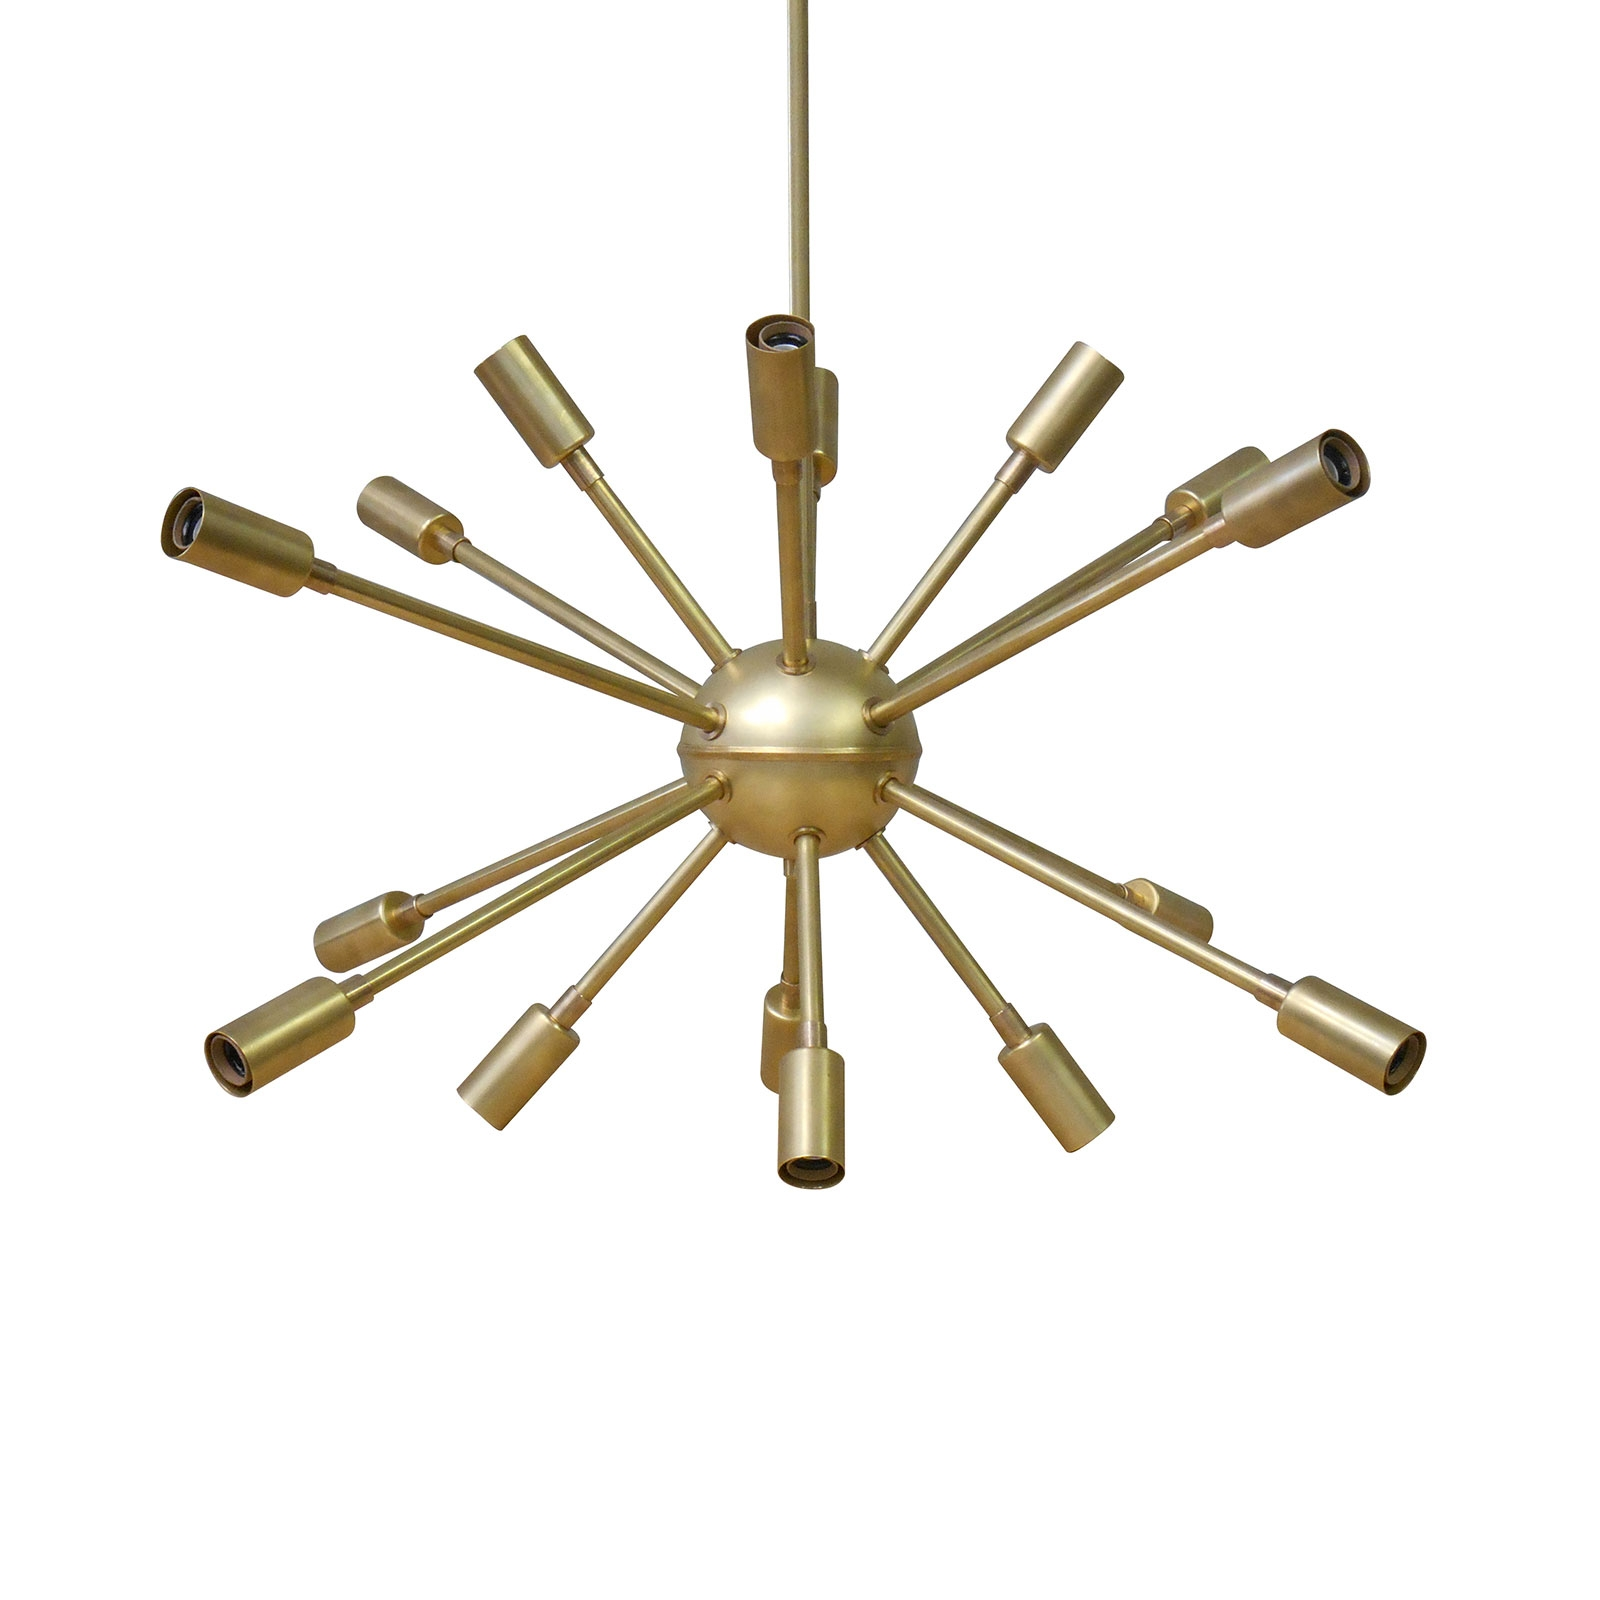 Interior Design Wonderful Lowes Light Fixtures Chandelier For Within Mini Sputnik Chandeliers (Image 11 of 25)